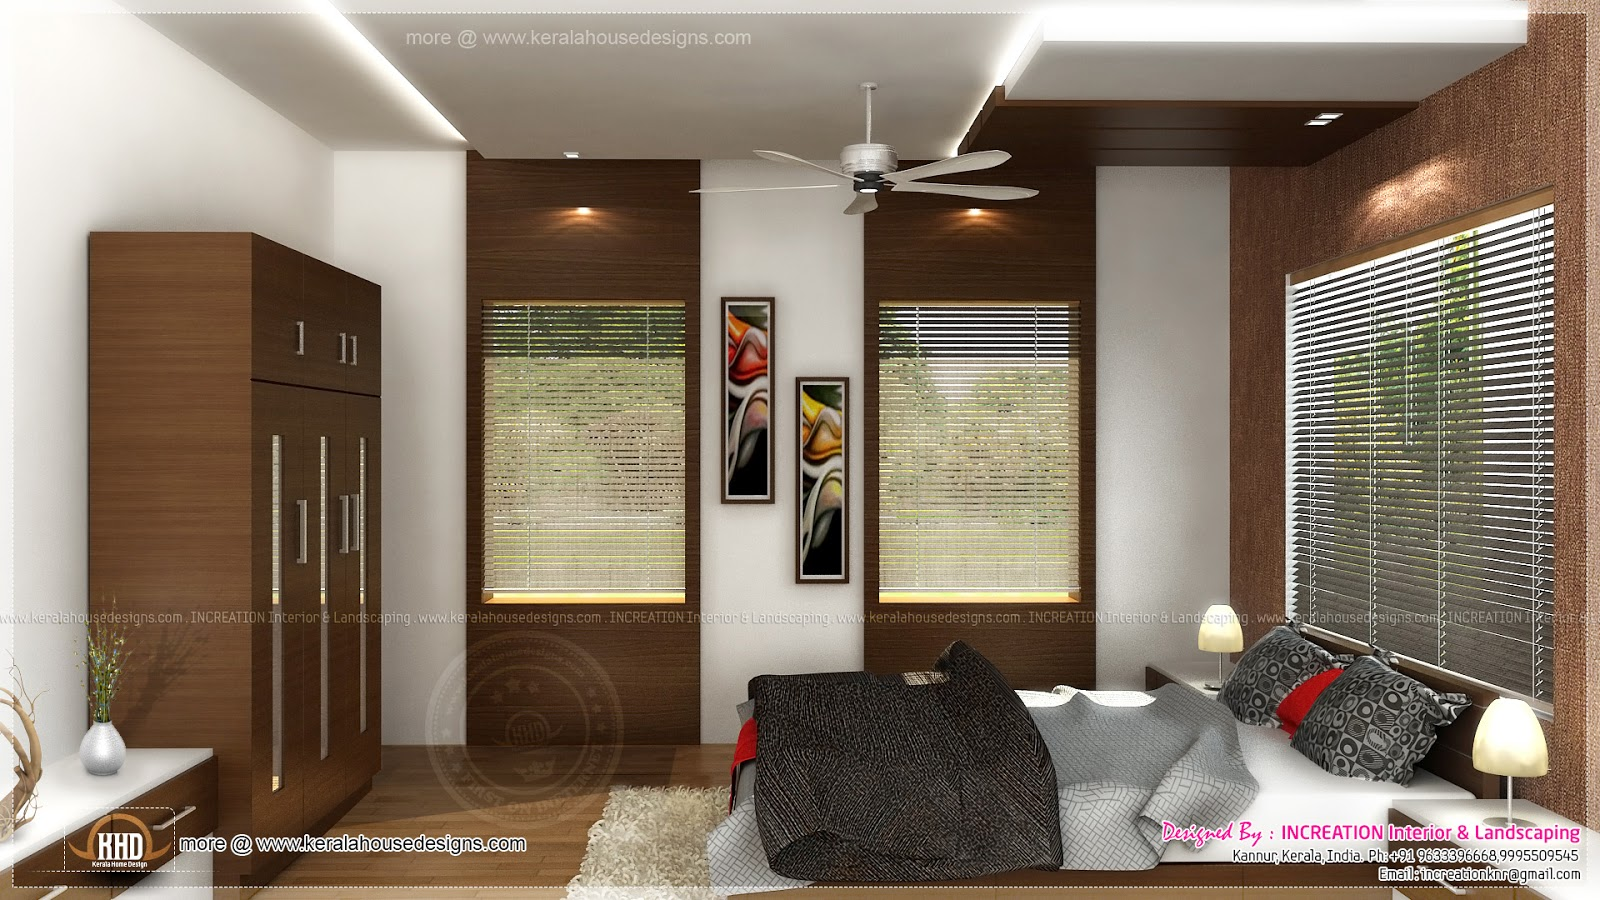 Interior designs from Kannur, Kerala - Kerala home design and